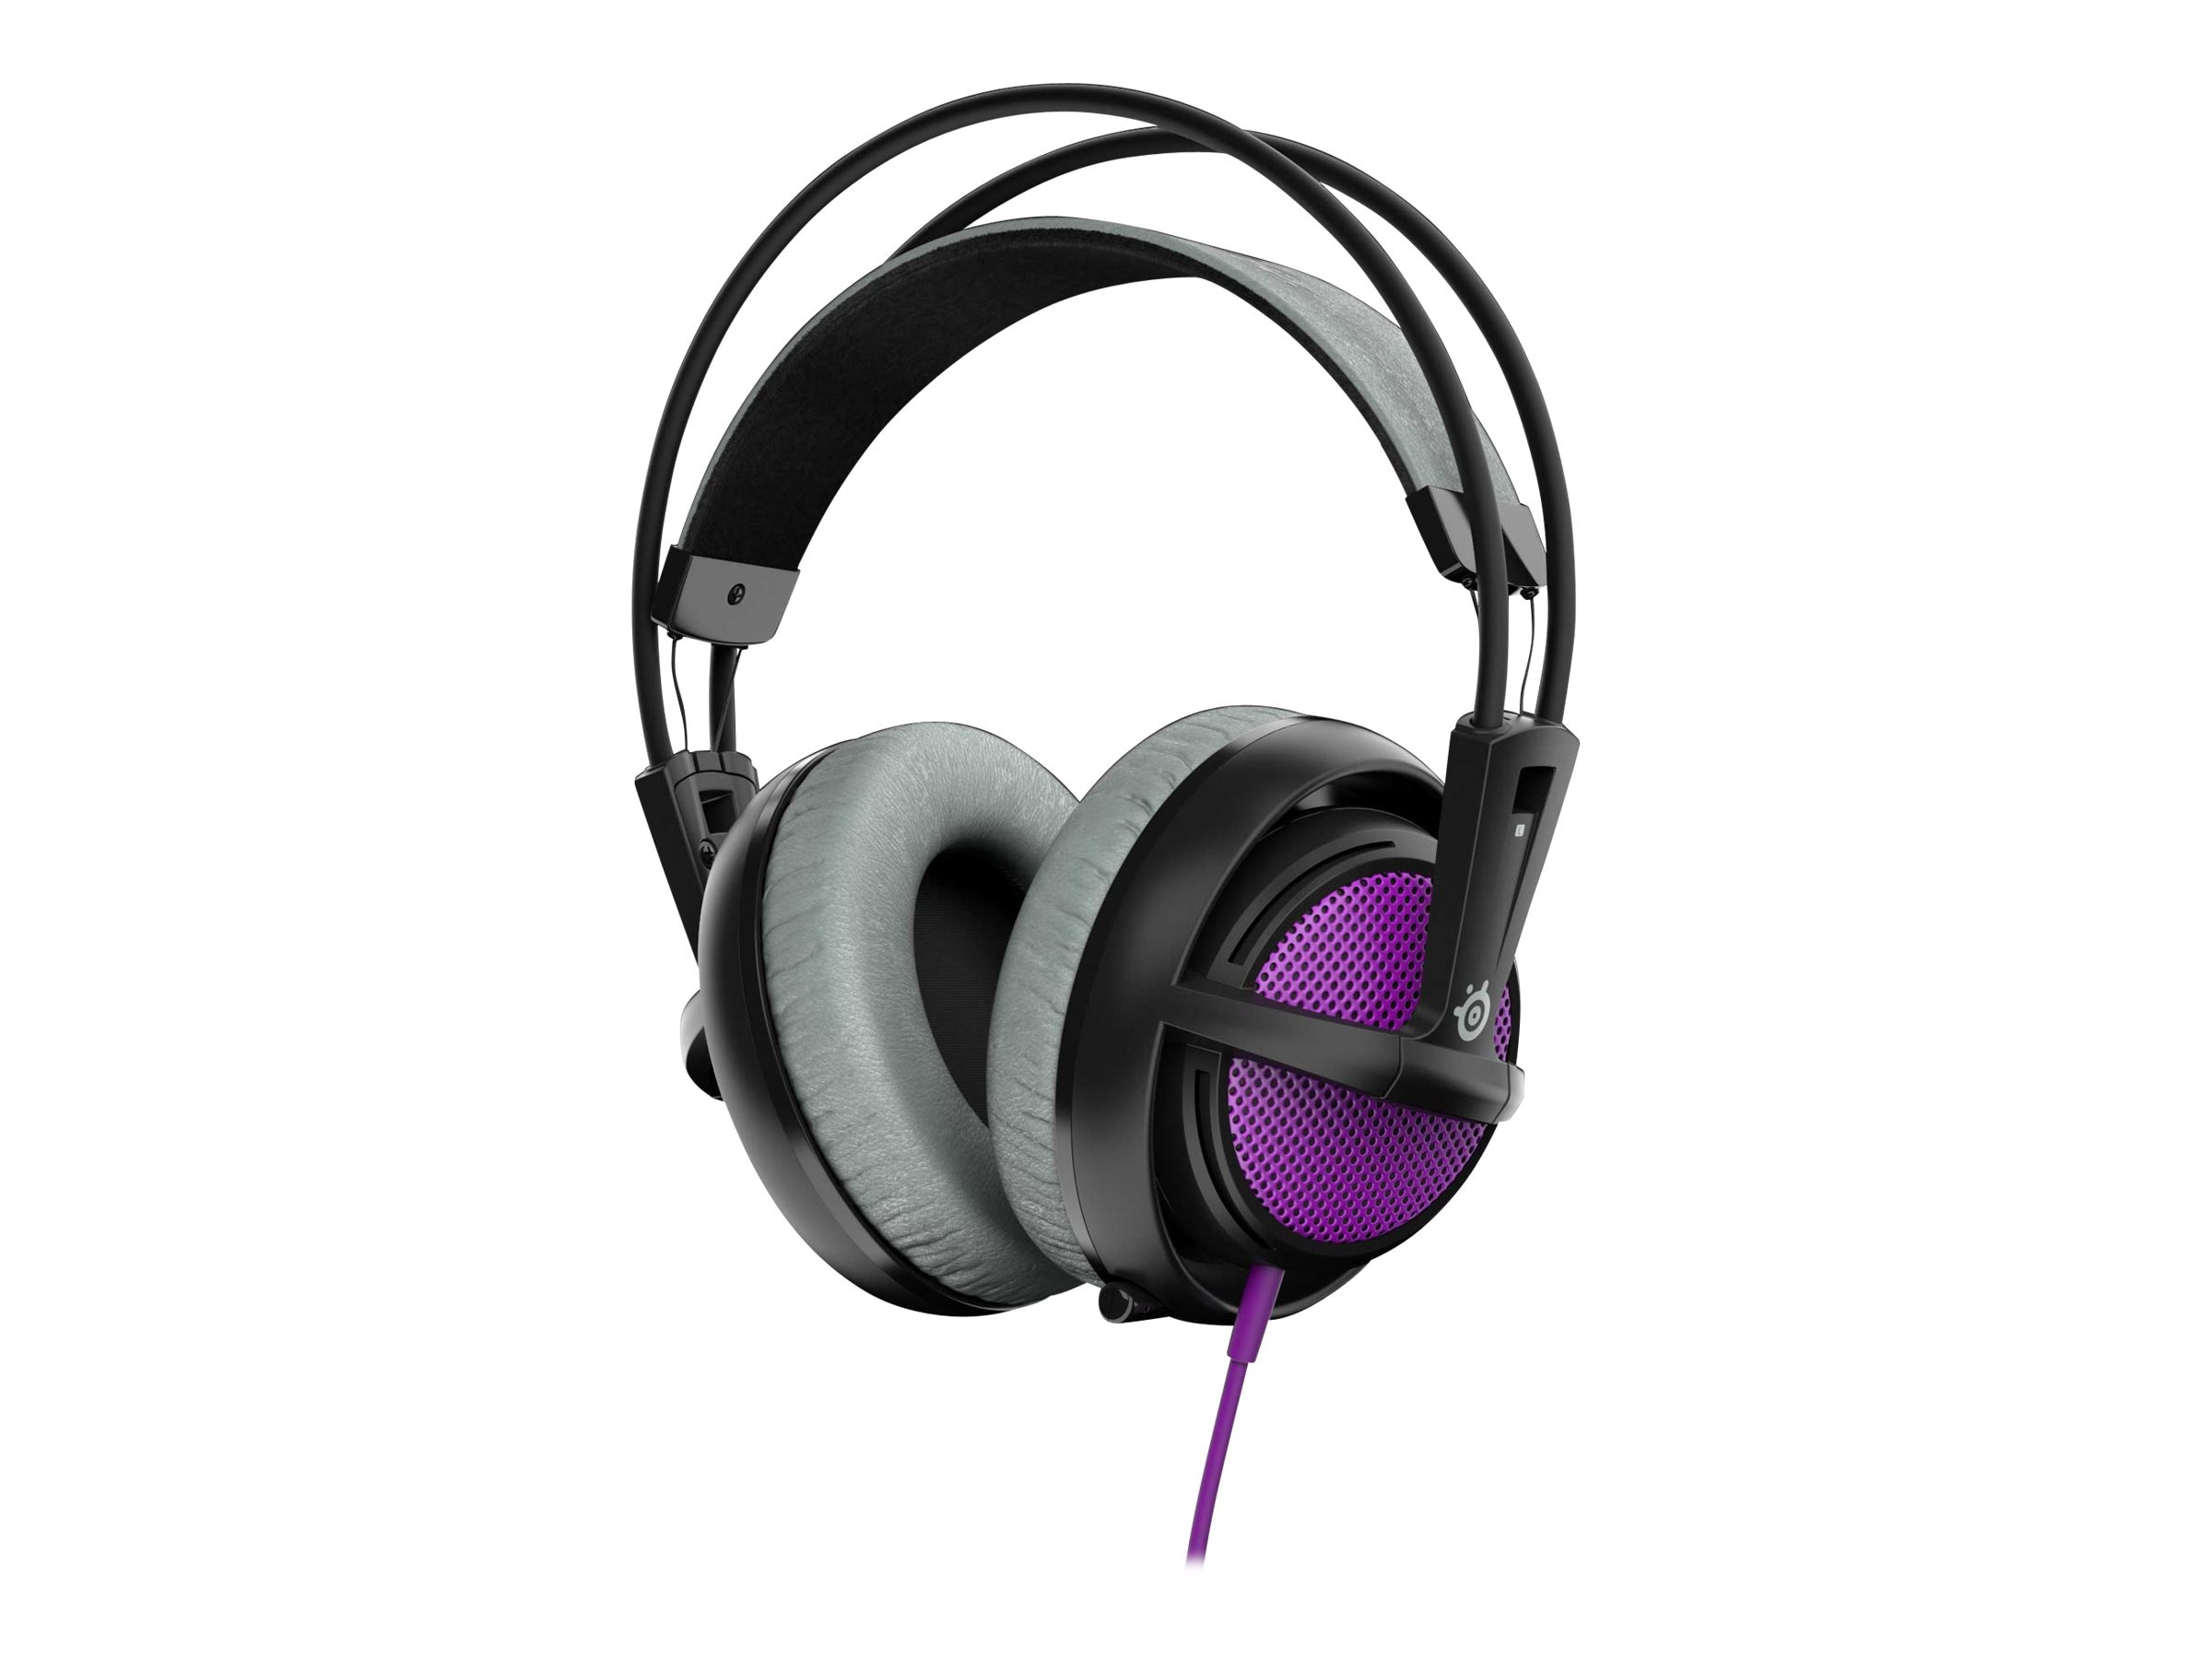 Steelseries Siberia 200 Headset - Purple, 51136, 30806654, Headsets (w/ microphone)